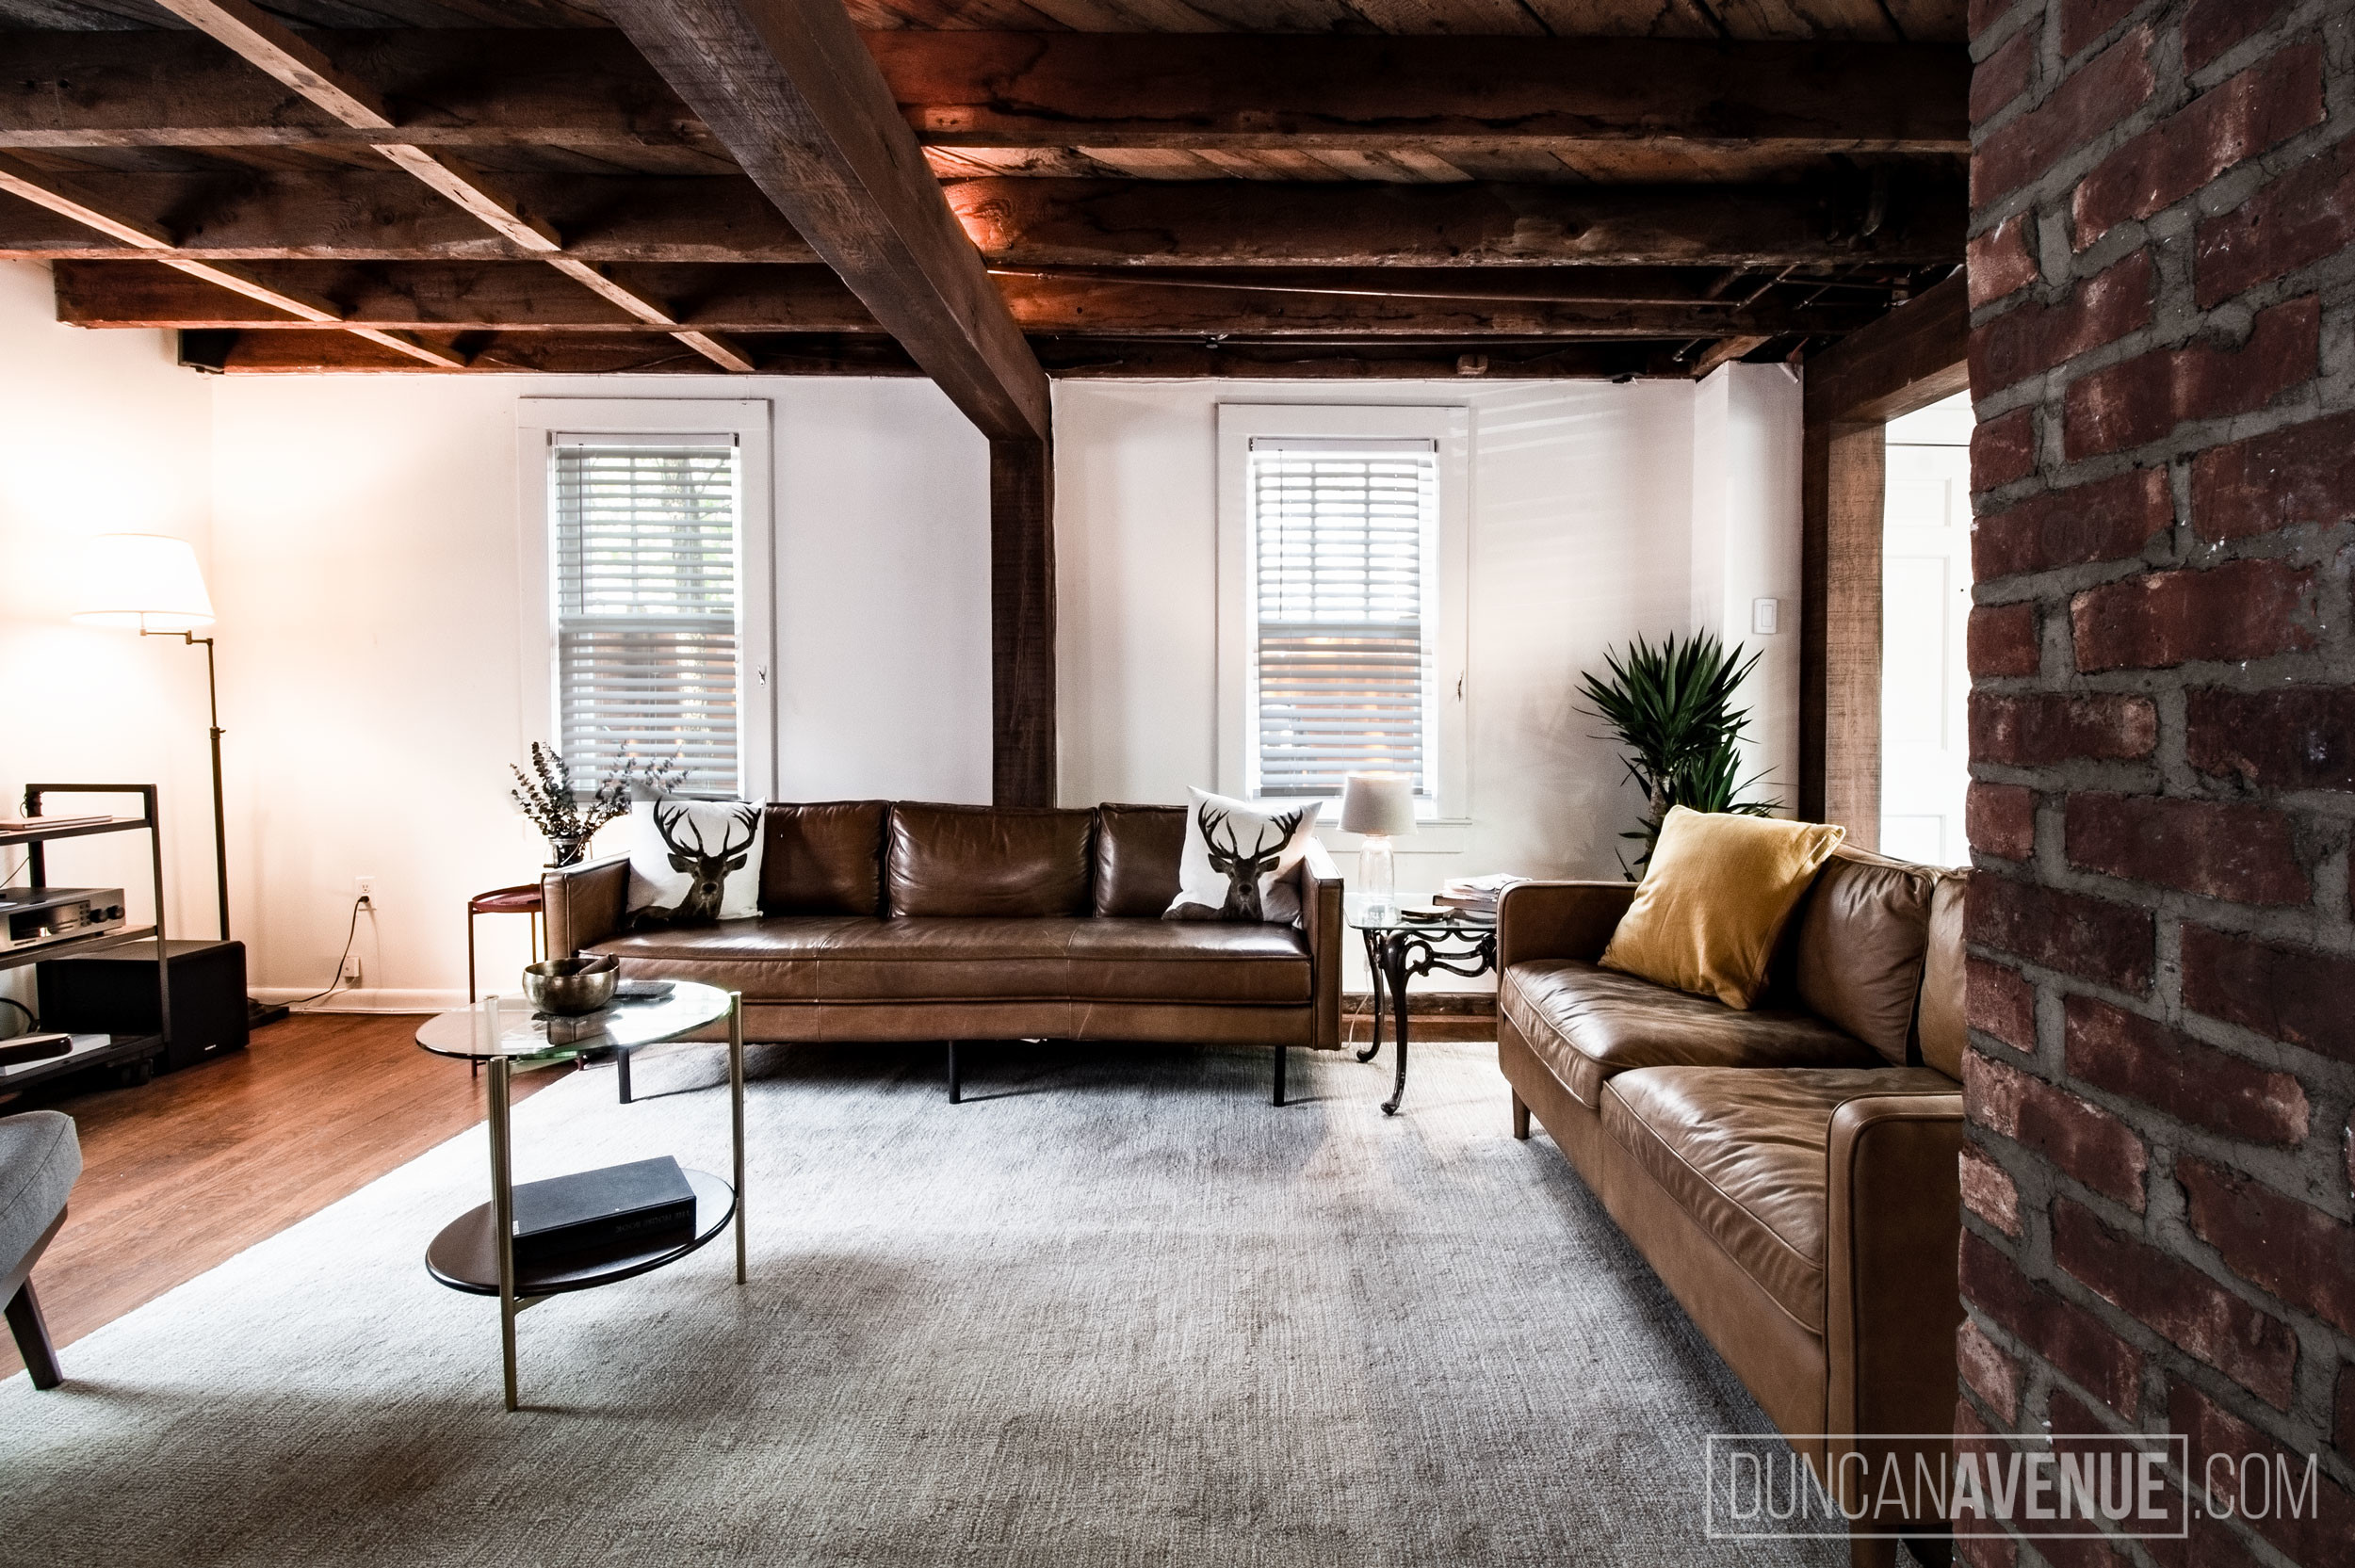 Woodstock, NY - Real Estate Photography Project by Maxwell Alexander